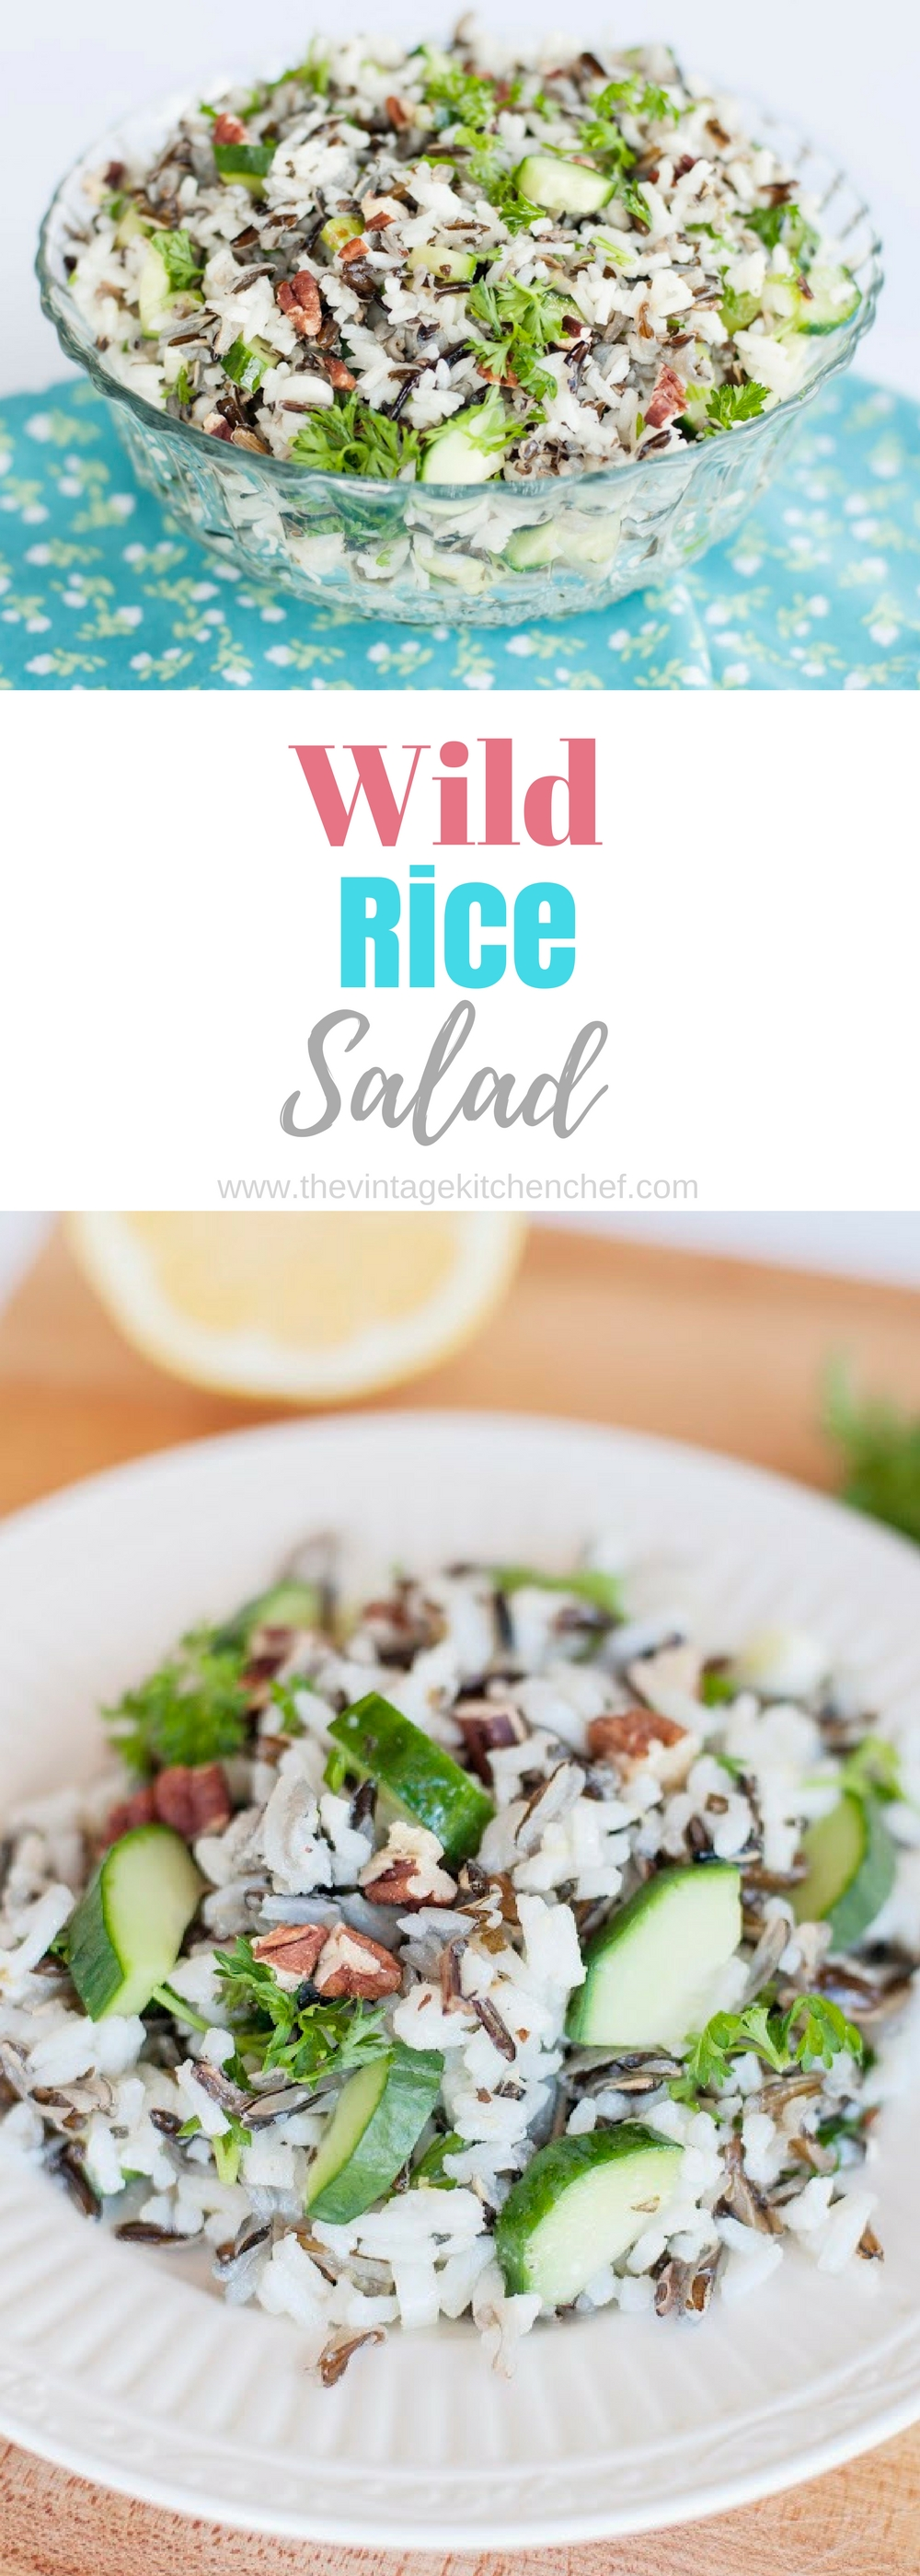 With a bit of crunch here and a bit of savory there, Wild Rice Salad is a blend of subtle flavors that treat your taste buds.